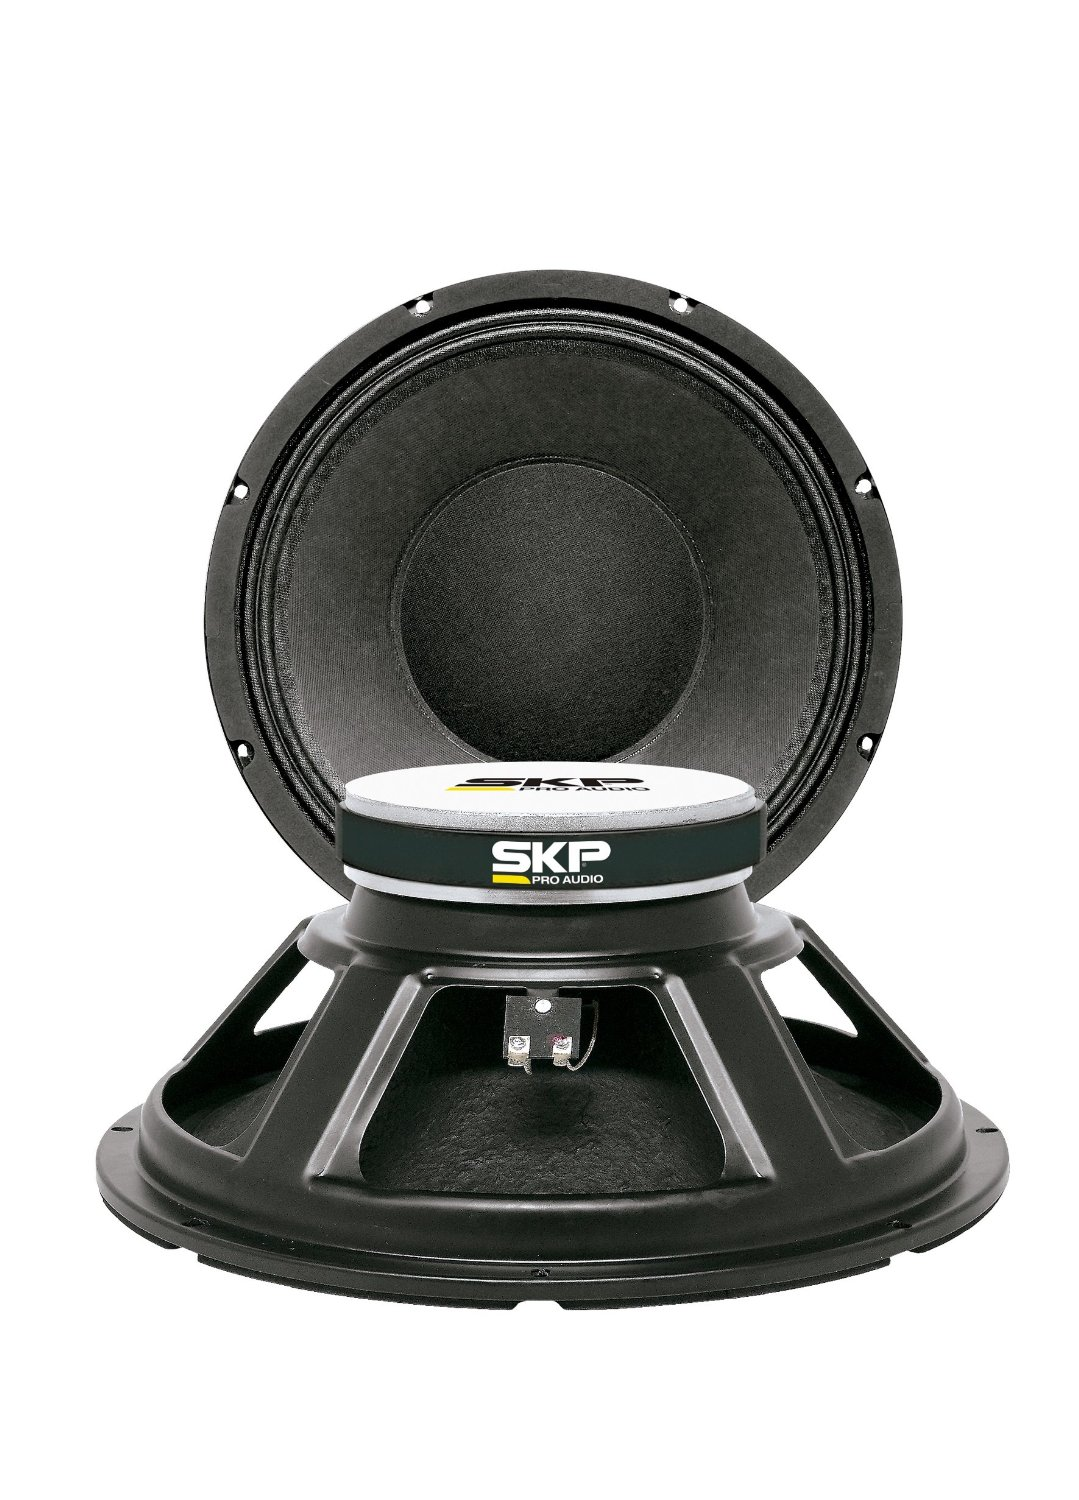 """SKP PRO AUDIO WF-1015 10"""" WOOFERS LOW SOUND, Program Power 300W, 8 Ohm, Professional Subwoofers and Deep Bass and Mid-bass"""